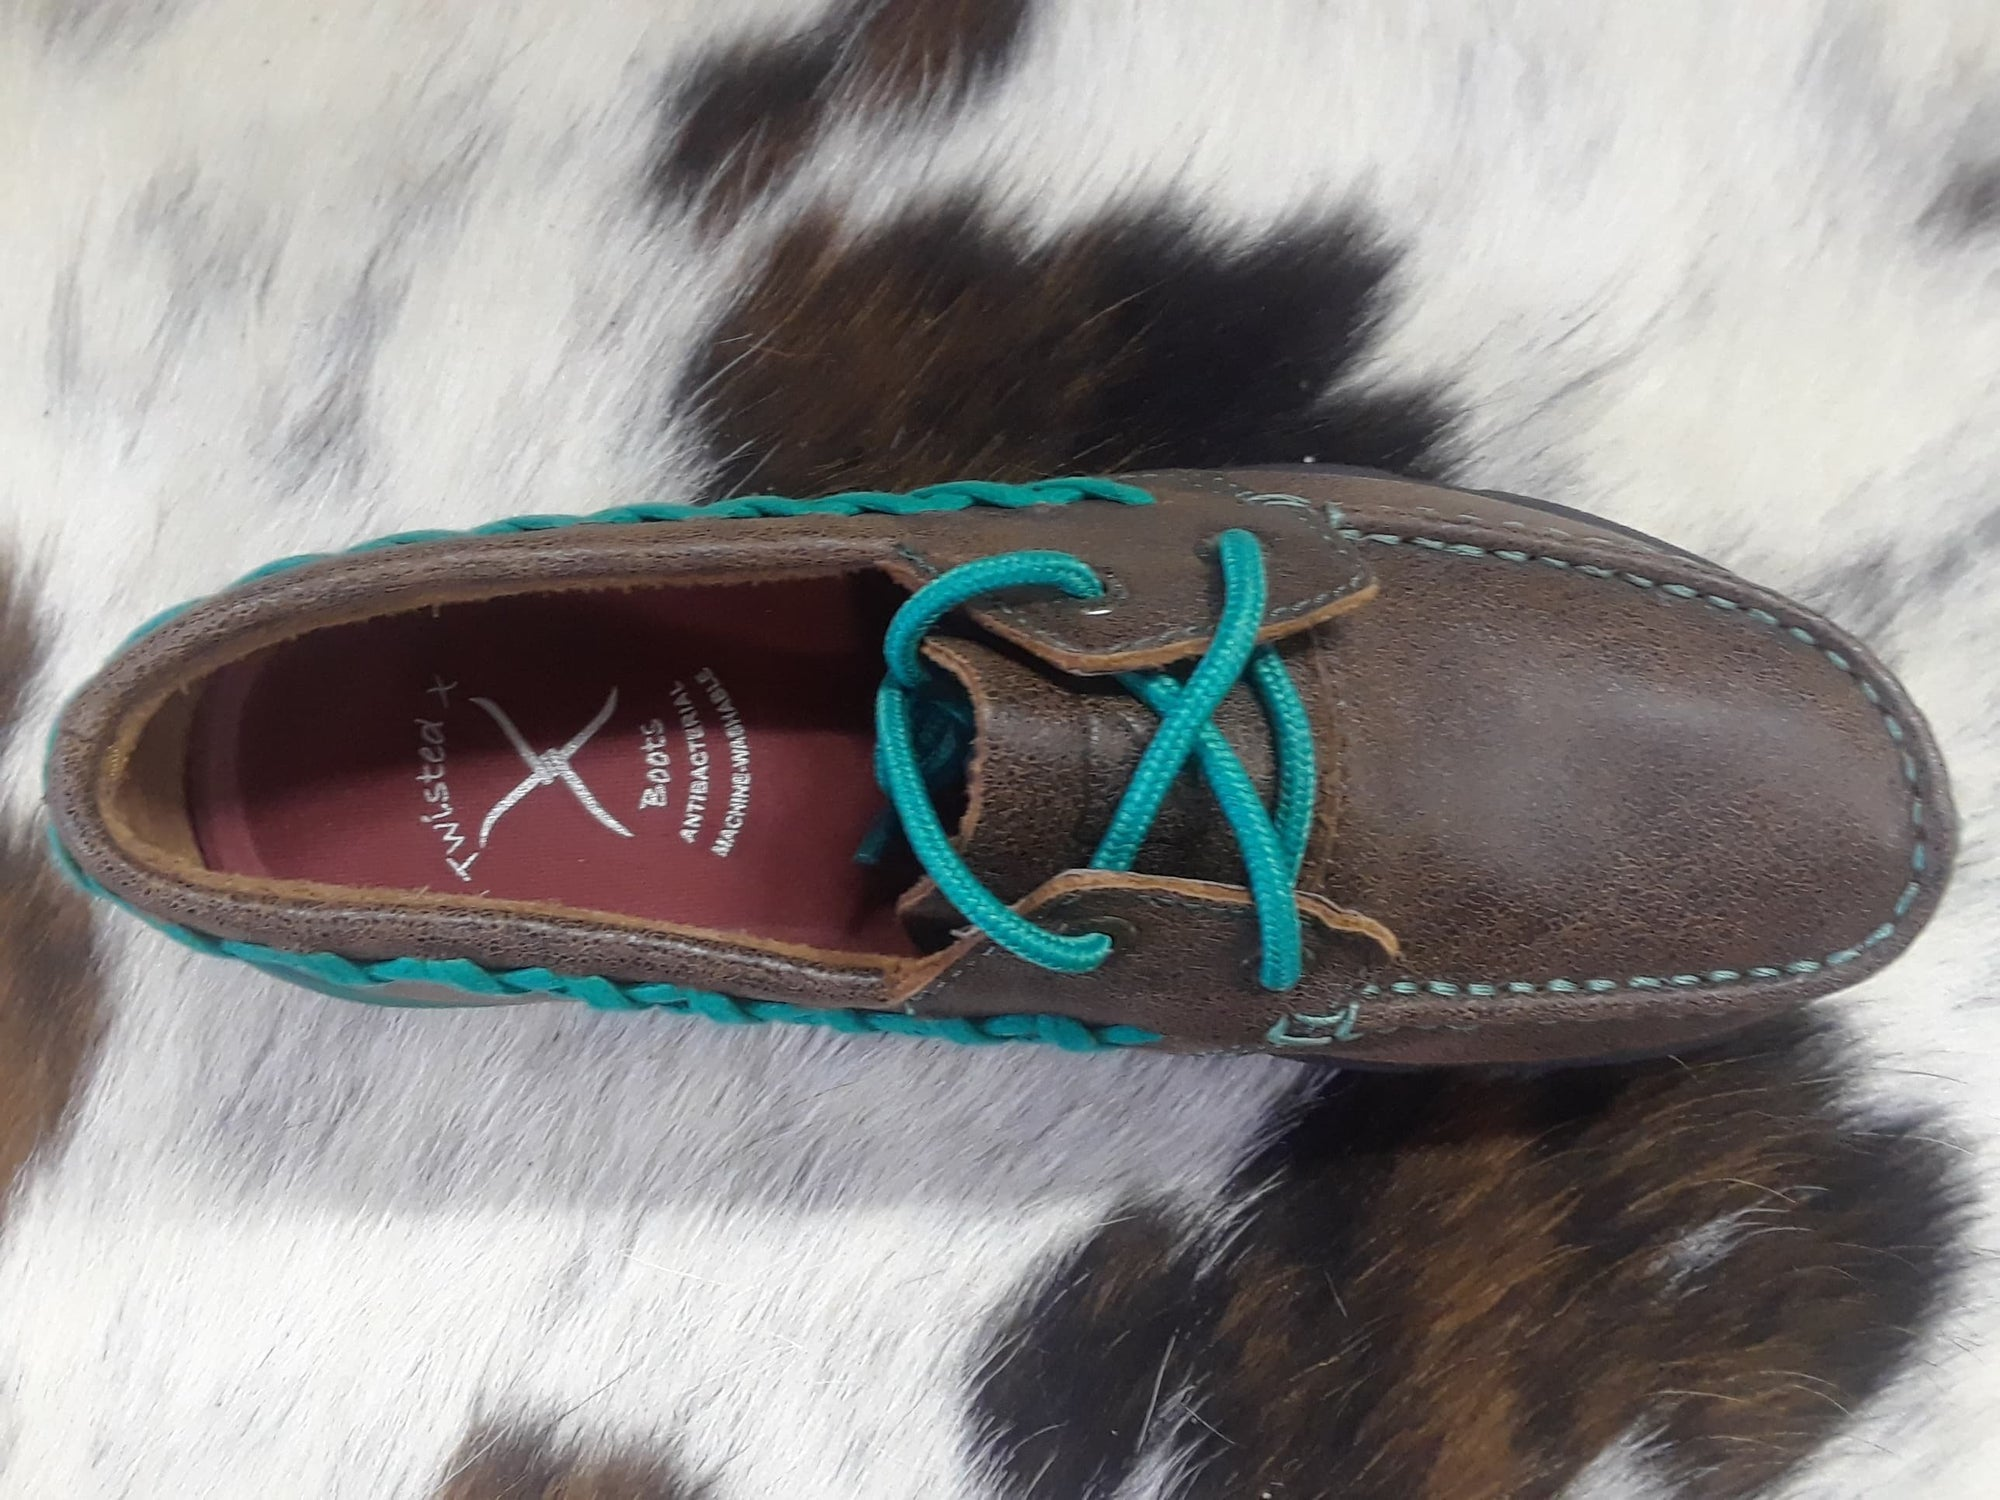 a941e2245314 RM Tack Exclusive Turquoise Driving Moc - RM Tack & Apparel